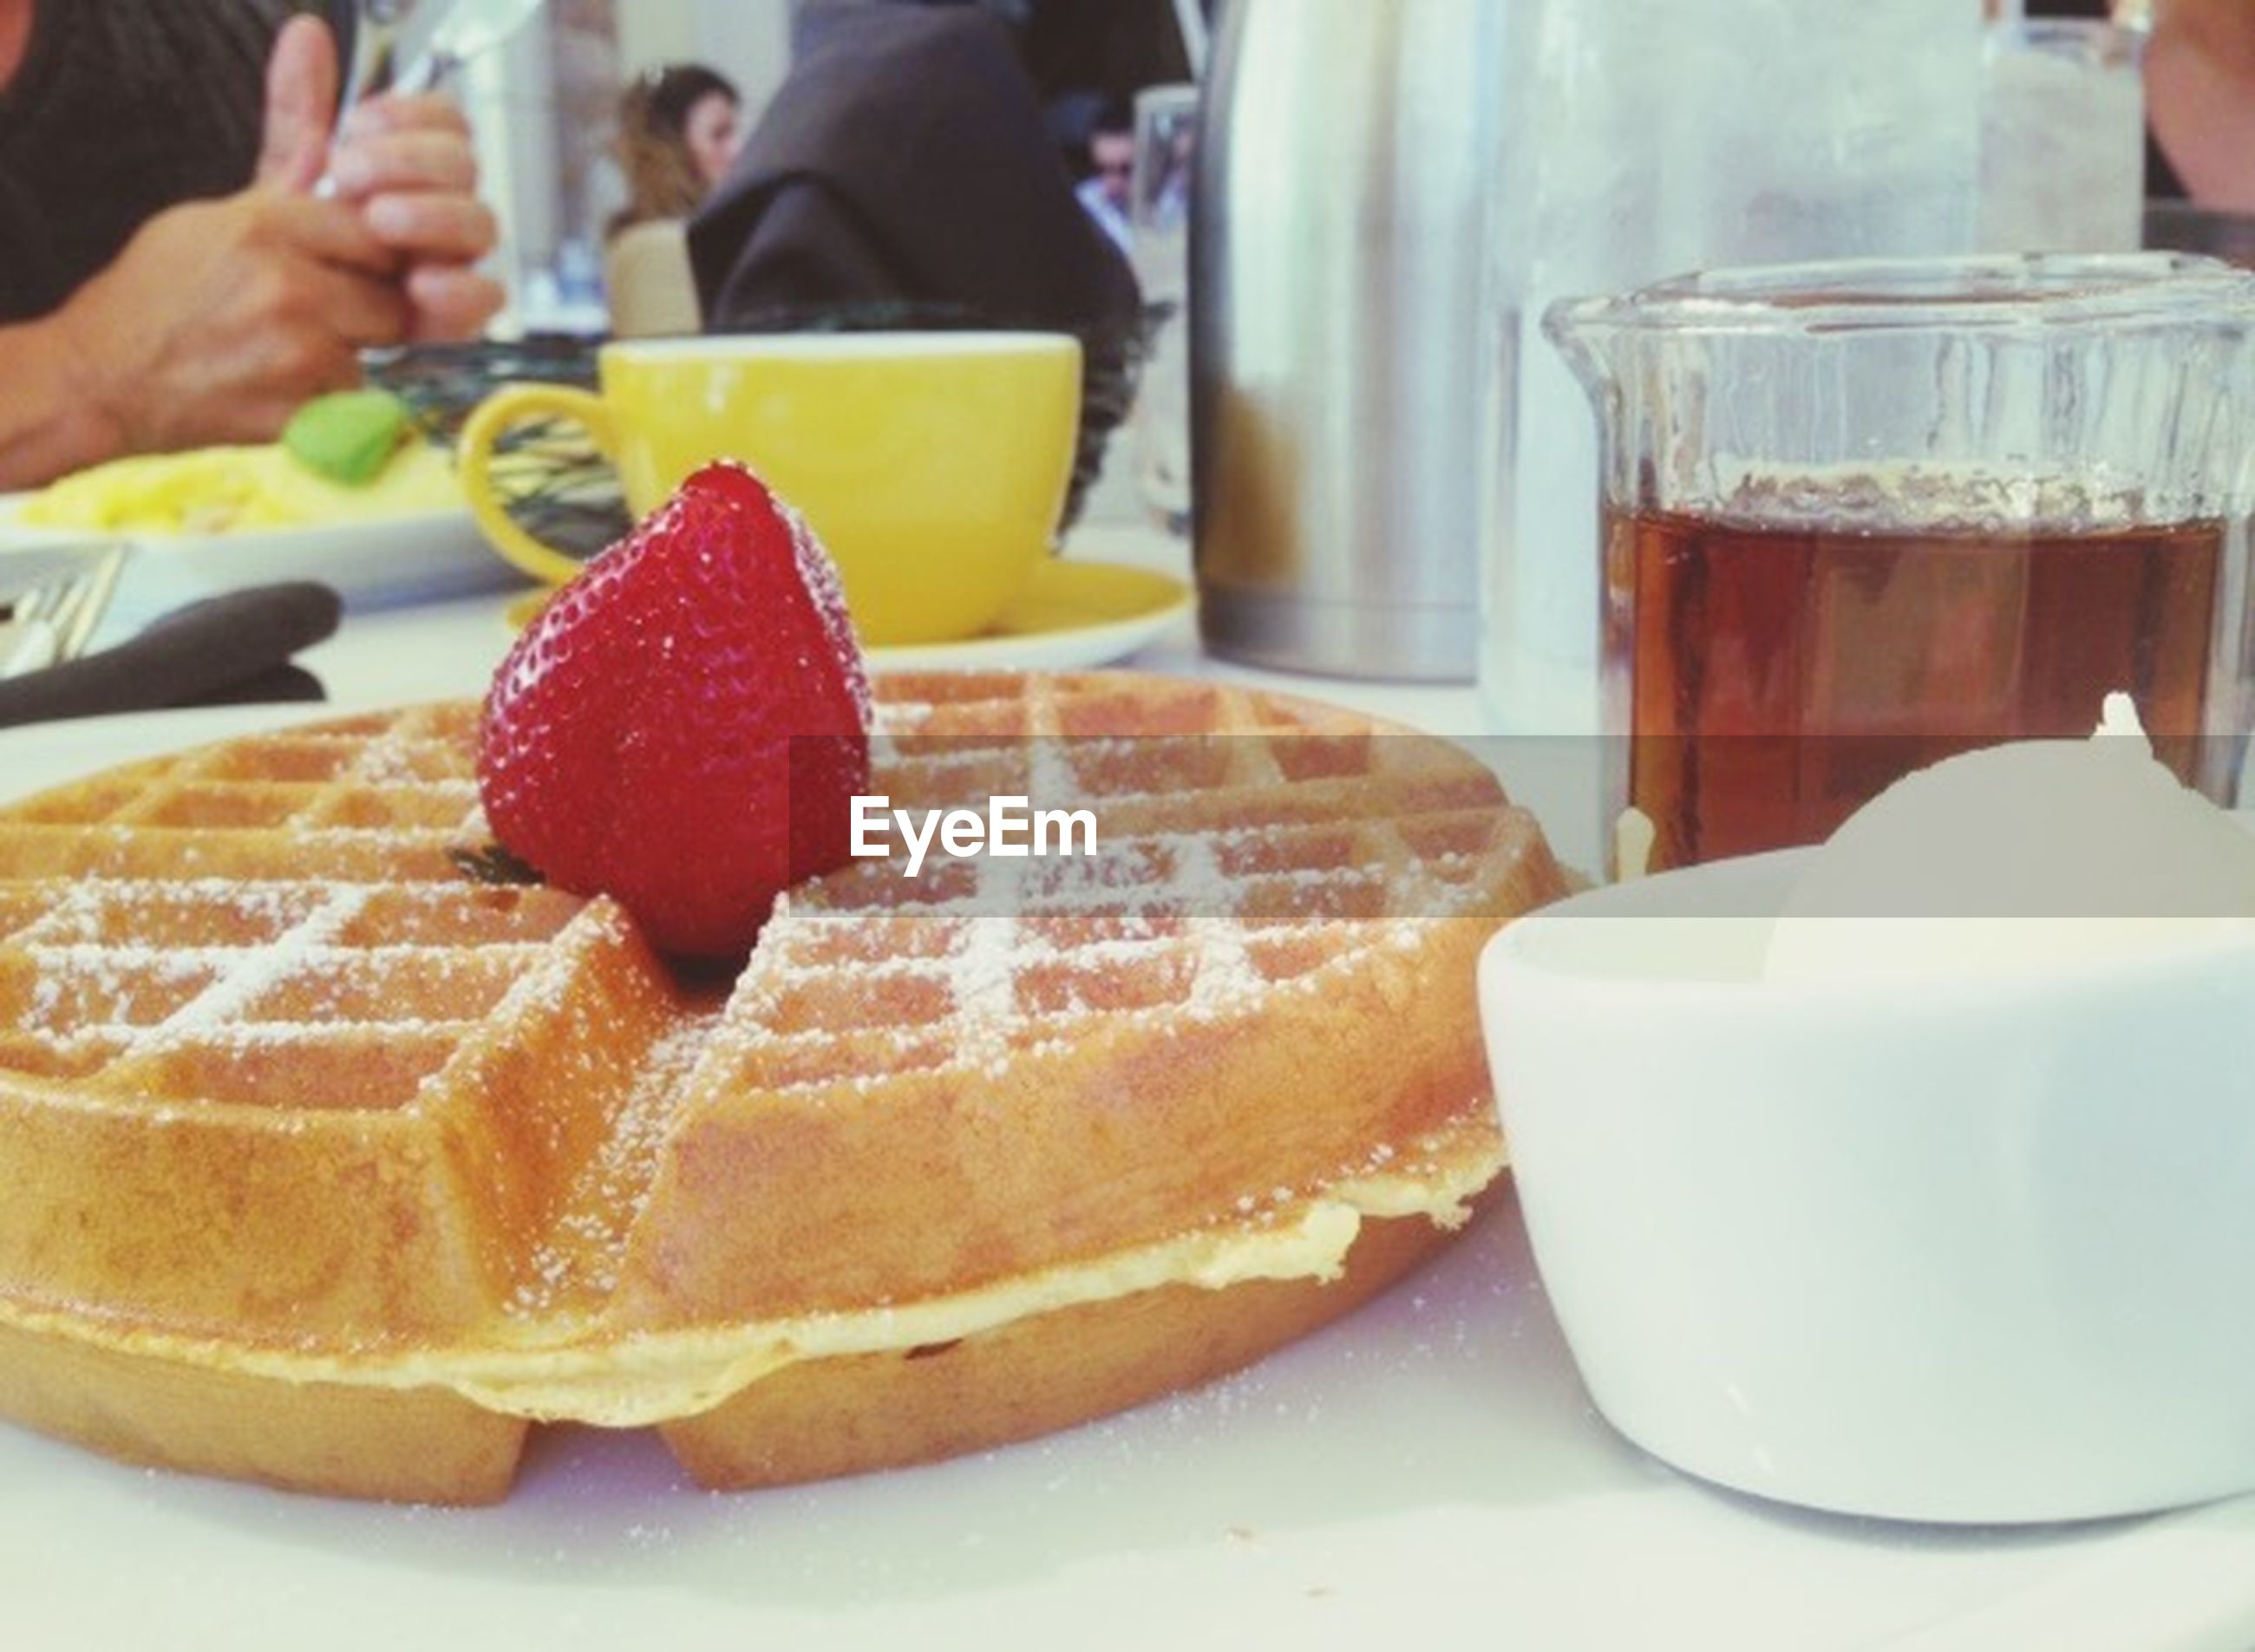 food and drink, indoors, food, freshness, person, sweet food, dessert, indulgence, unhealthy eating, holding, ready-to-eat, table, plate, part of, refreshment, drink, cake